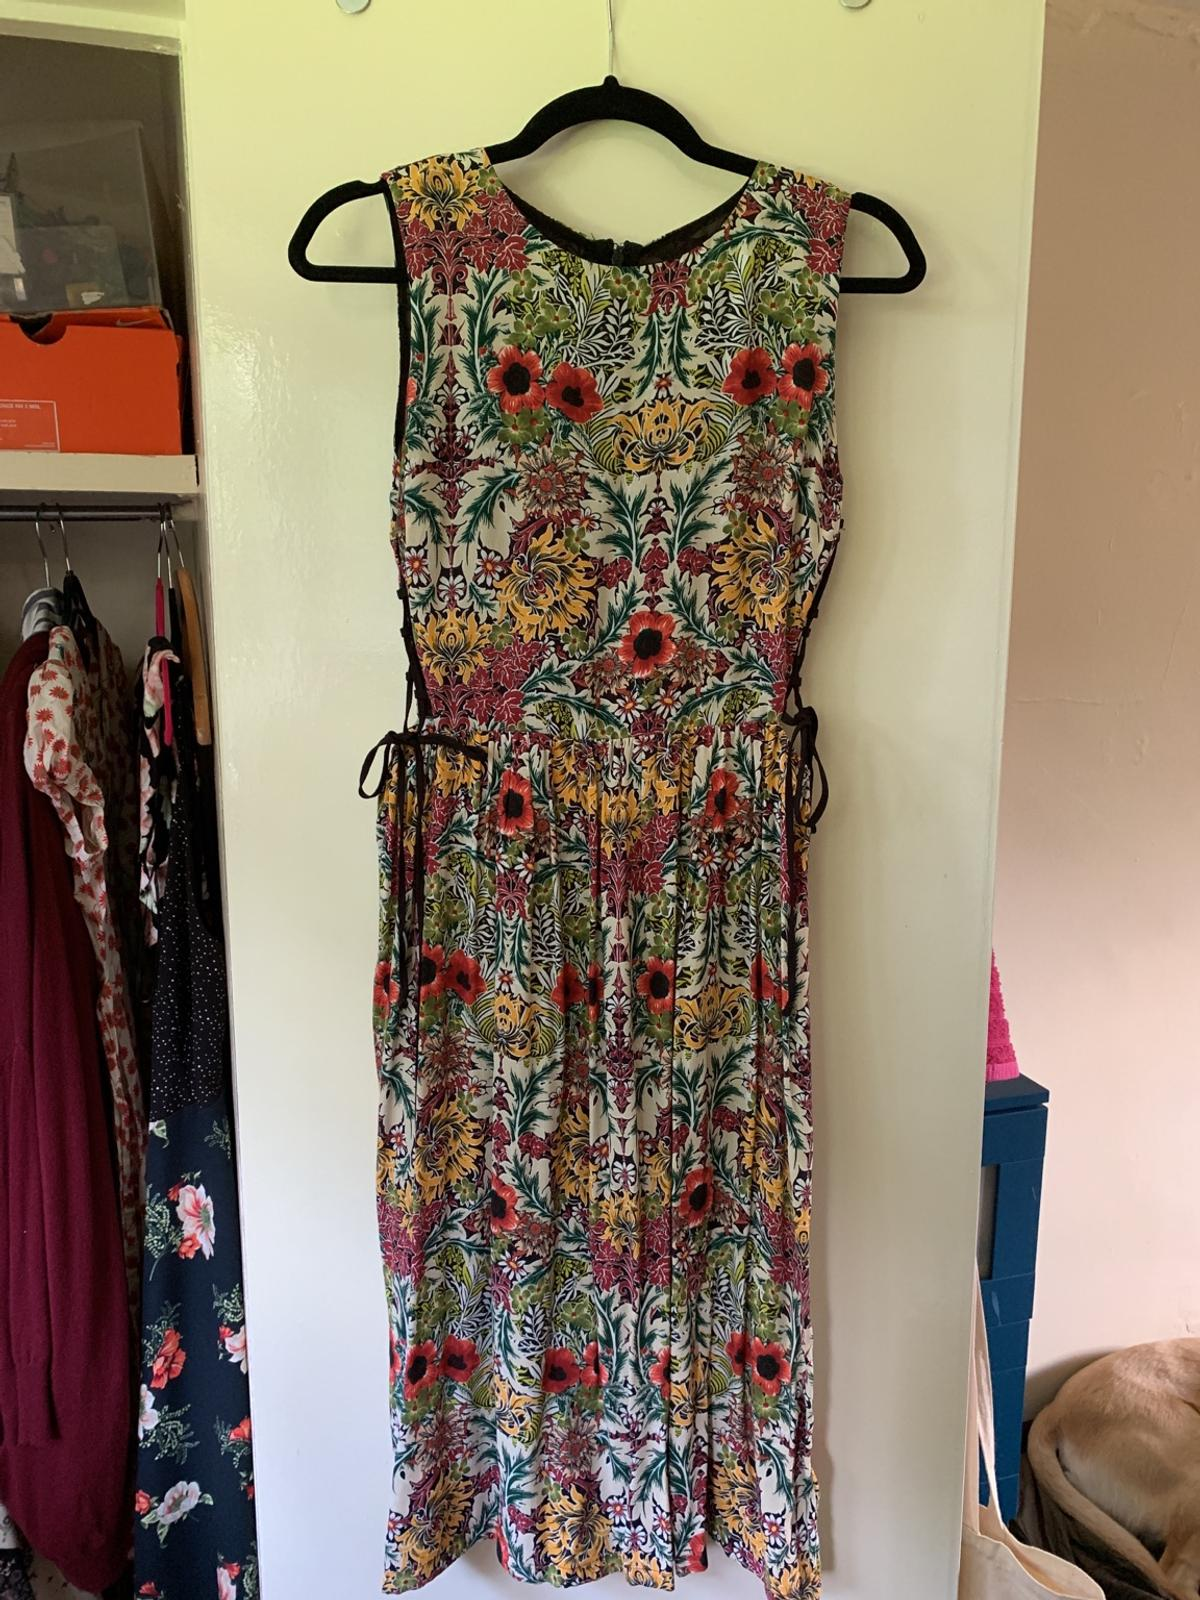 Topshop Uk 10 Floral Style Midi Dress In Rg18 Chieveley For 10 00 For Sale Shpock